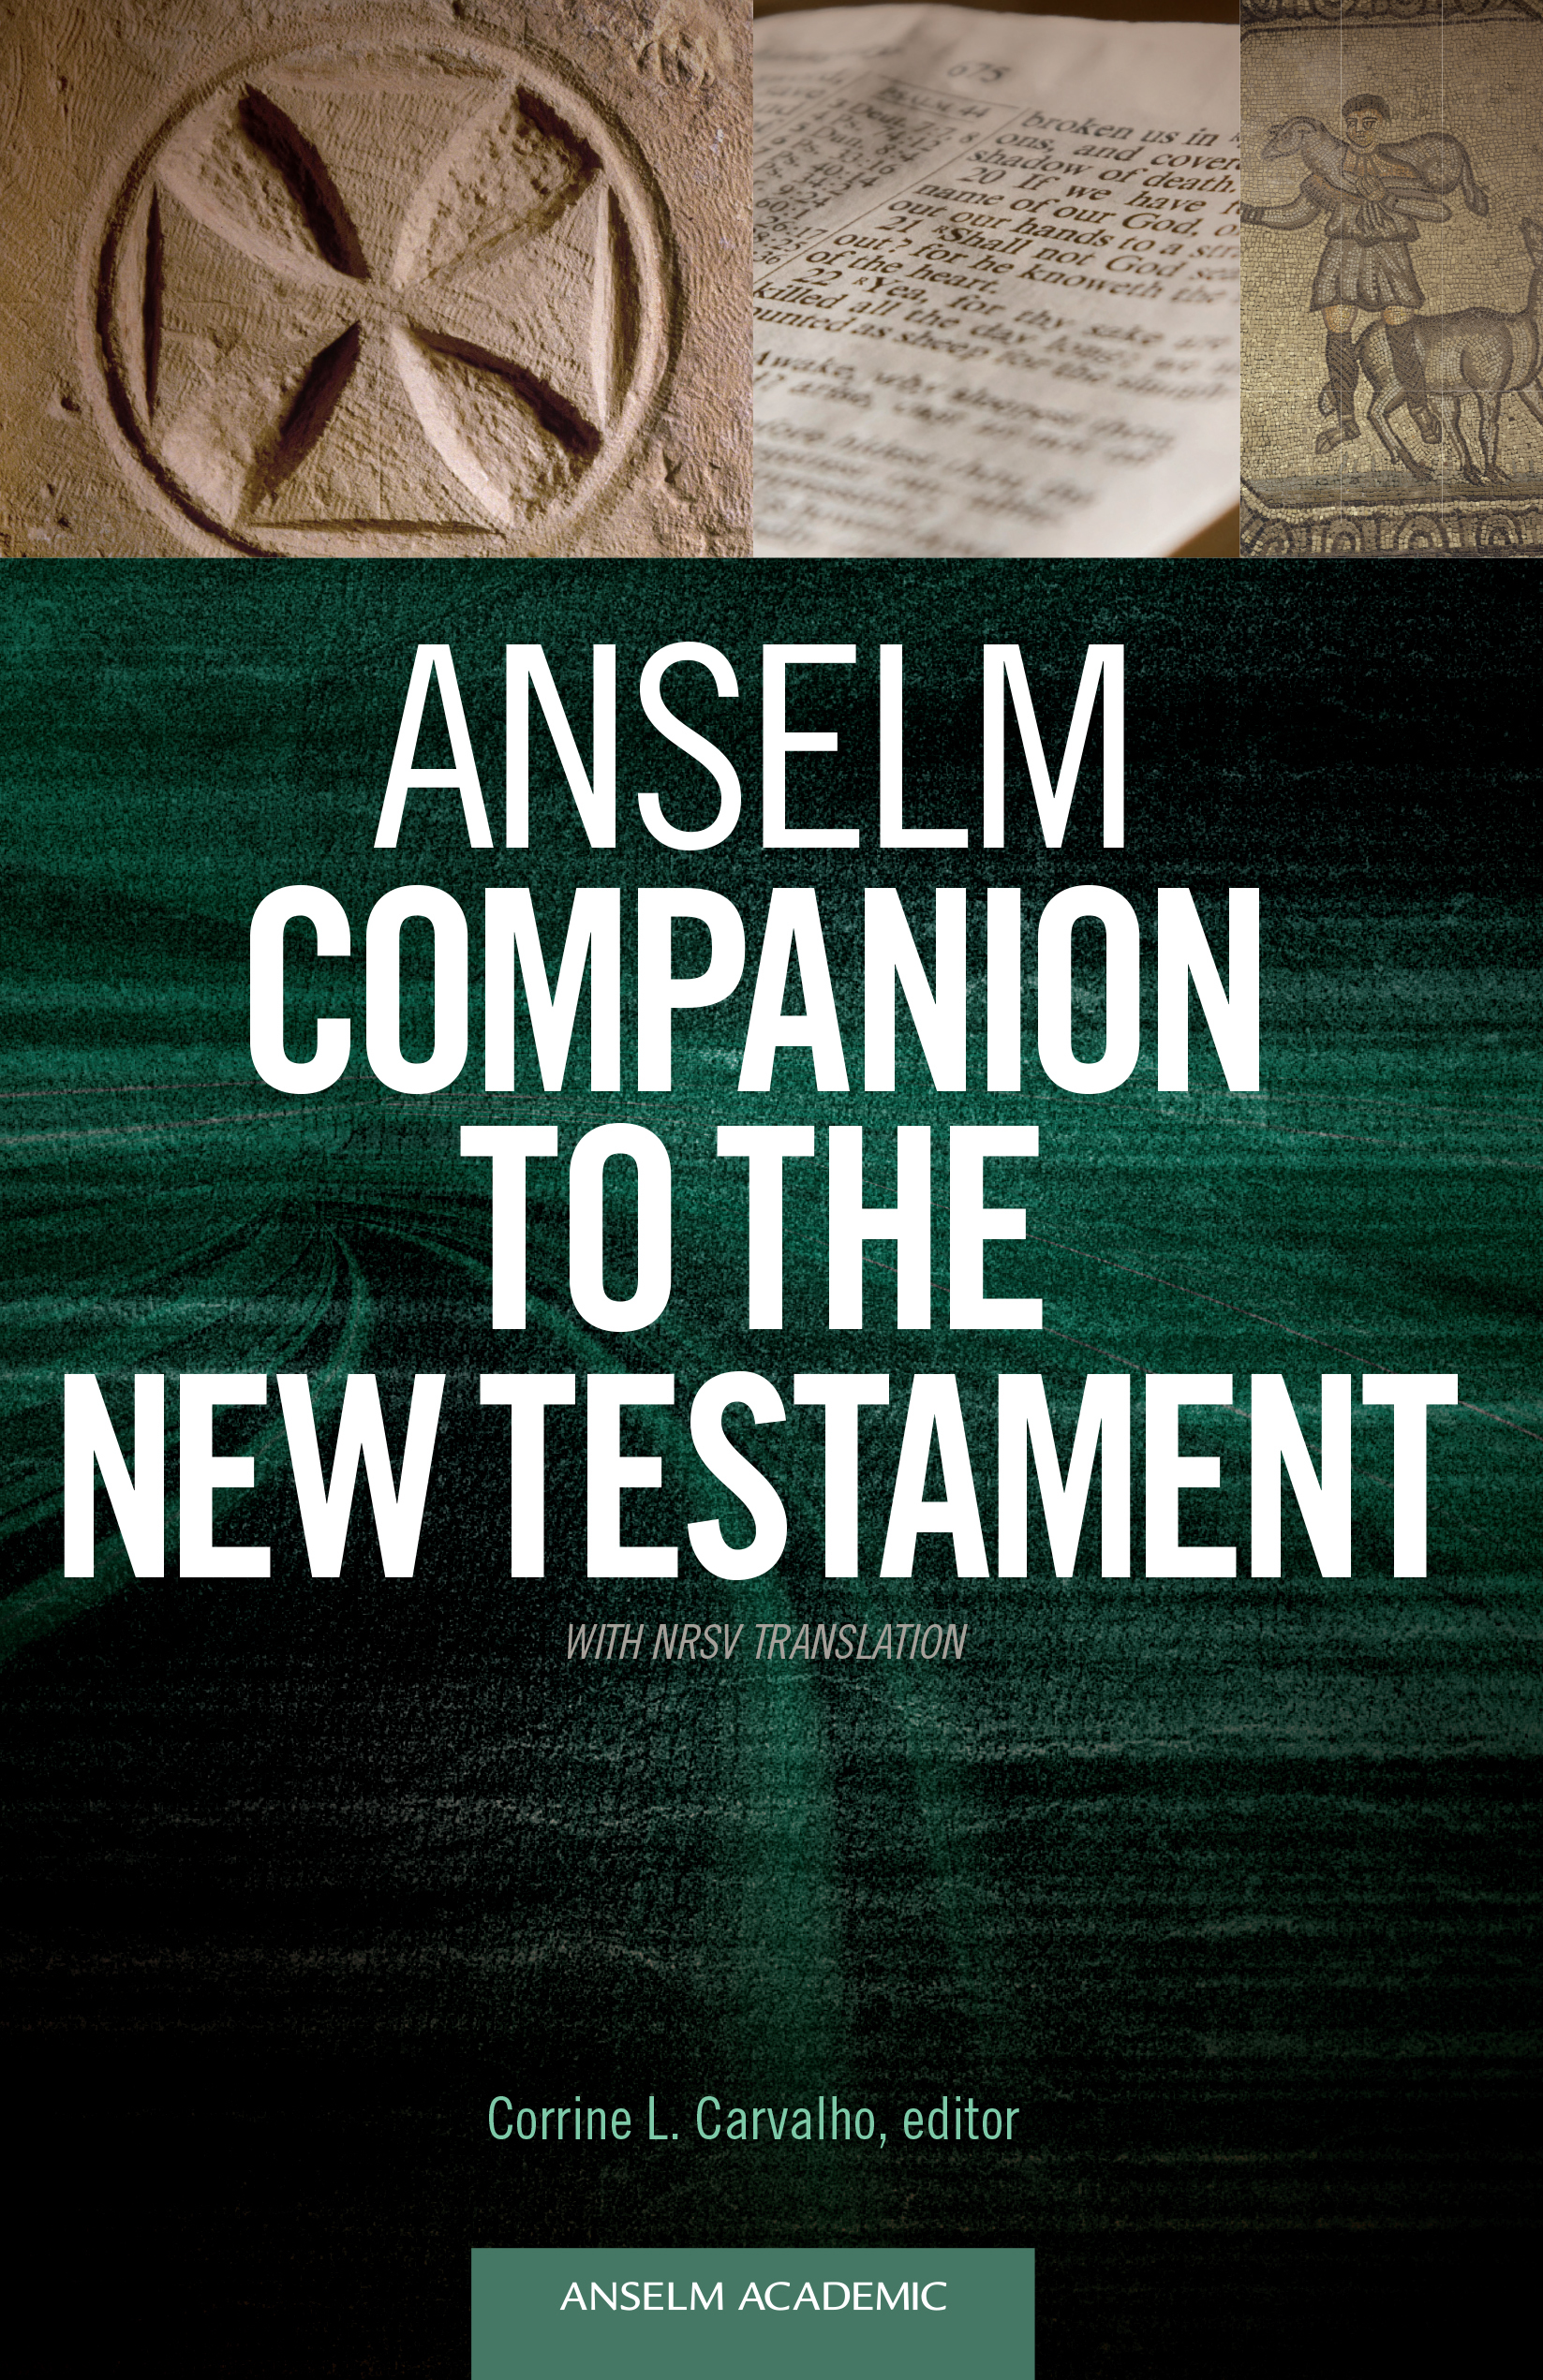 Anselm Companion to the New Testament - With NRSV Translation